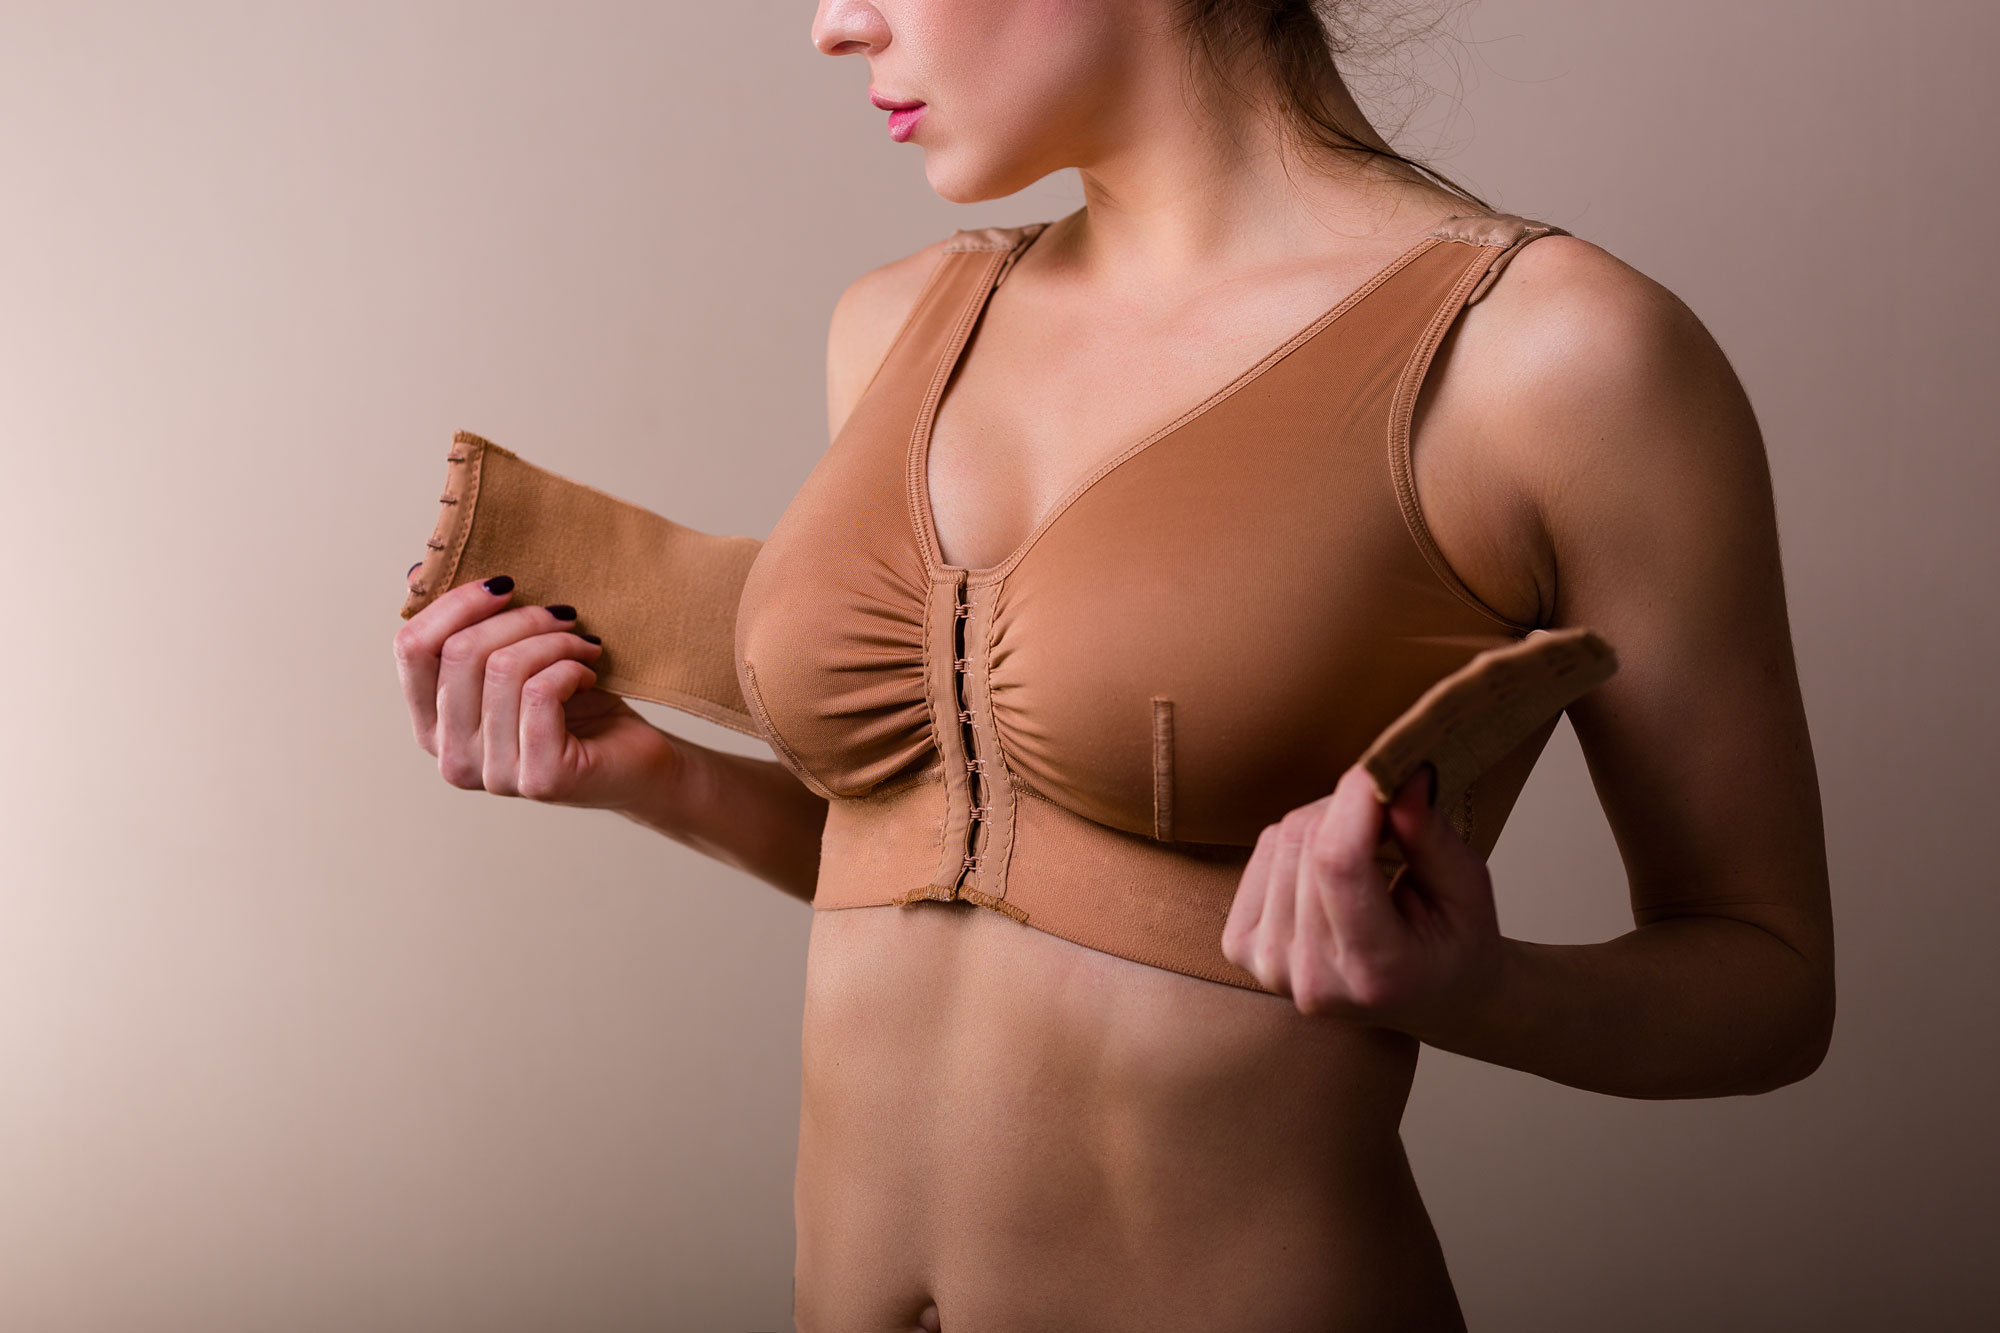 The benefits of a post-op bra